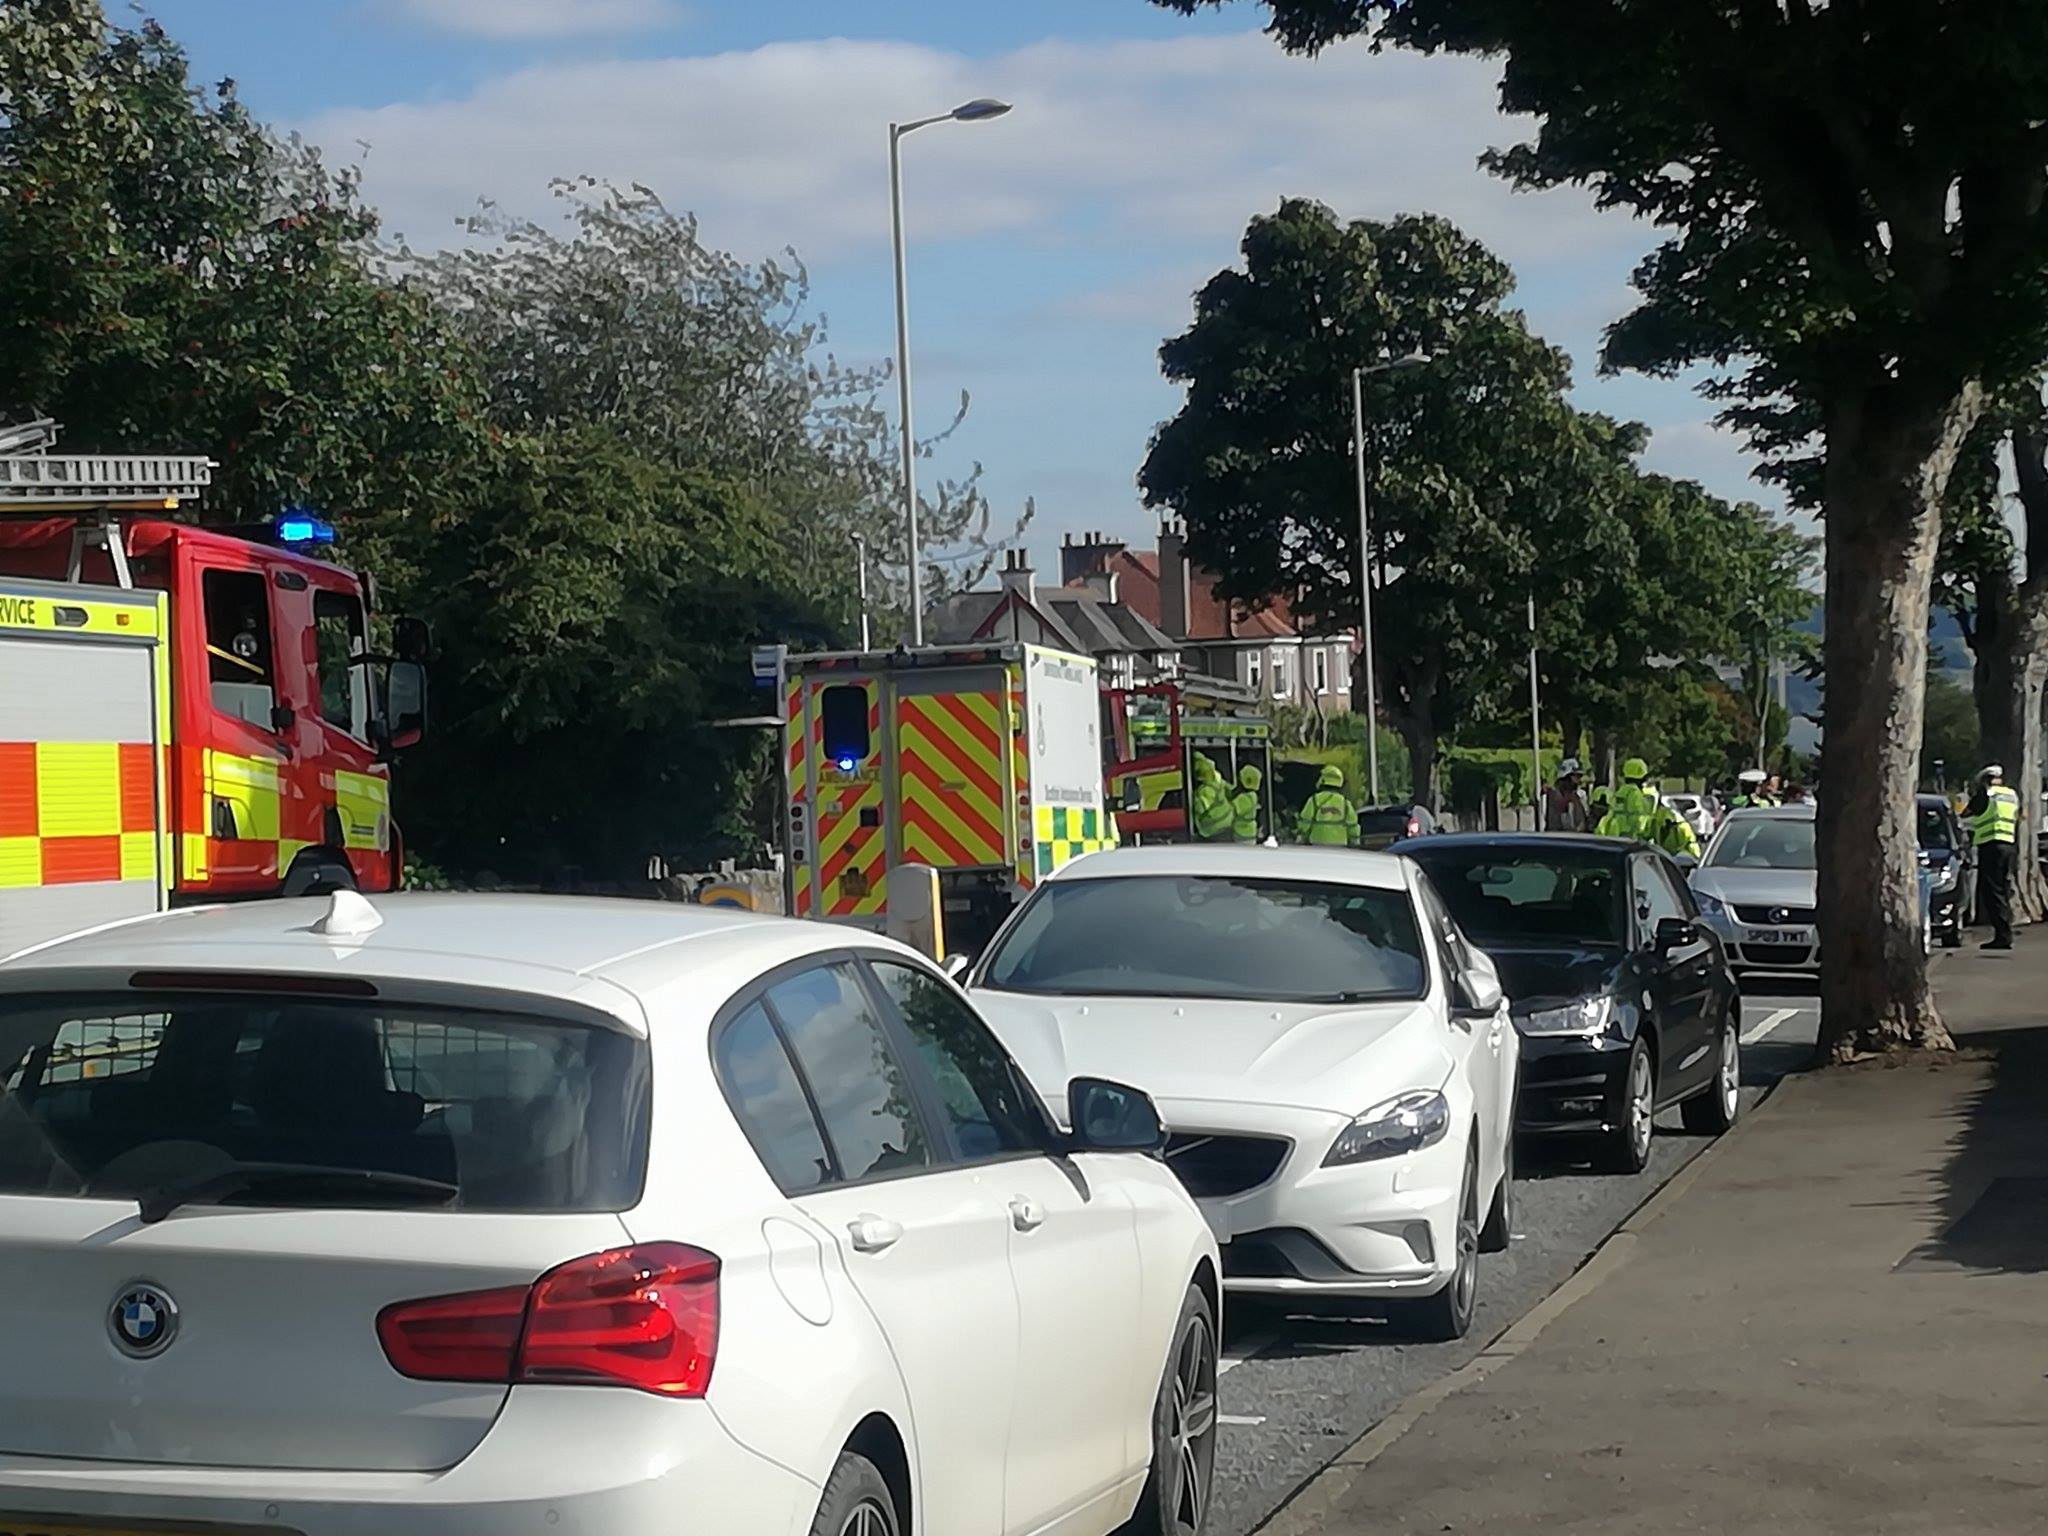 Residents spoke of their concerns following a crash which left a woman and a child in hospital.